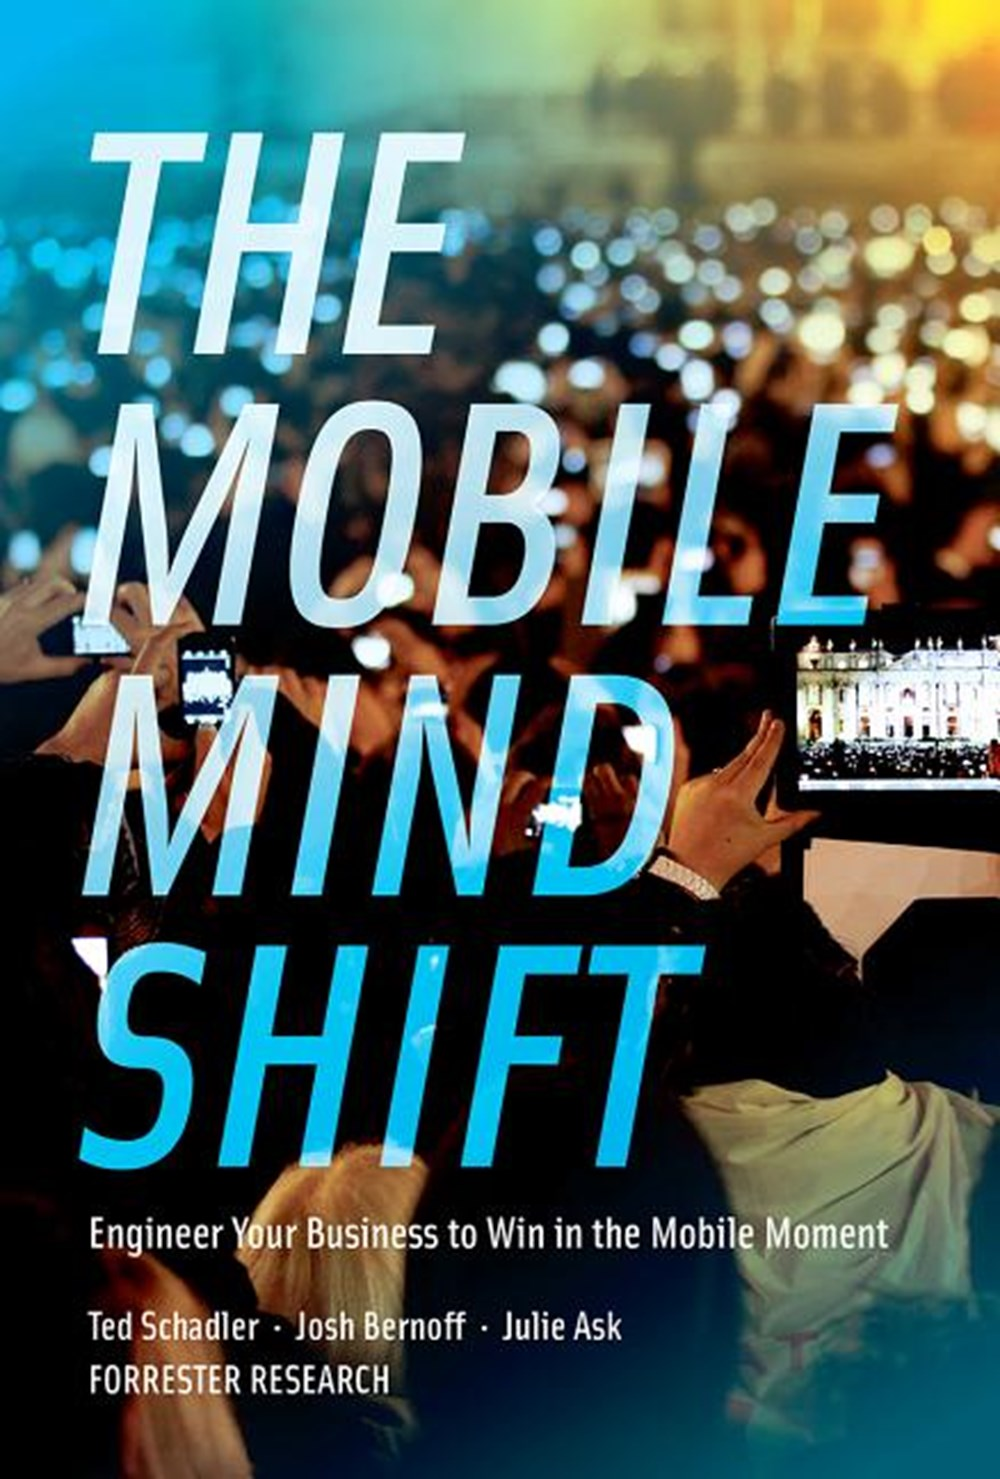 Mobile Mind Shift Engineer Your Business to Win in the Mobile Moment